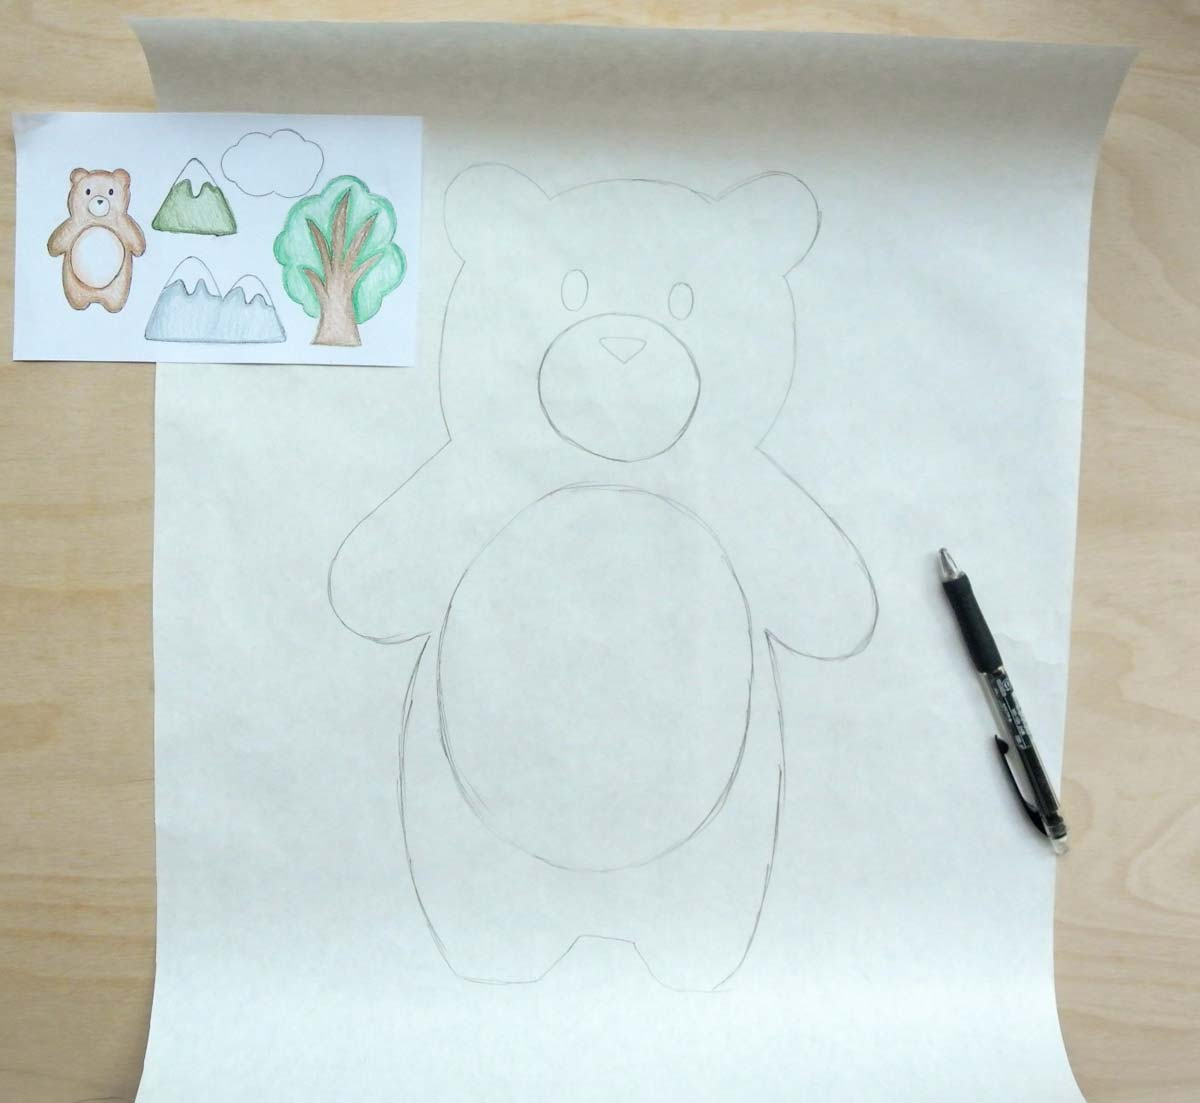 Shows original bear plush design and enlarged bear plush pattern sketch with mechanical pencil on right side. How to Make Plushie Tutorial